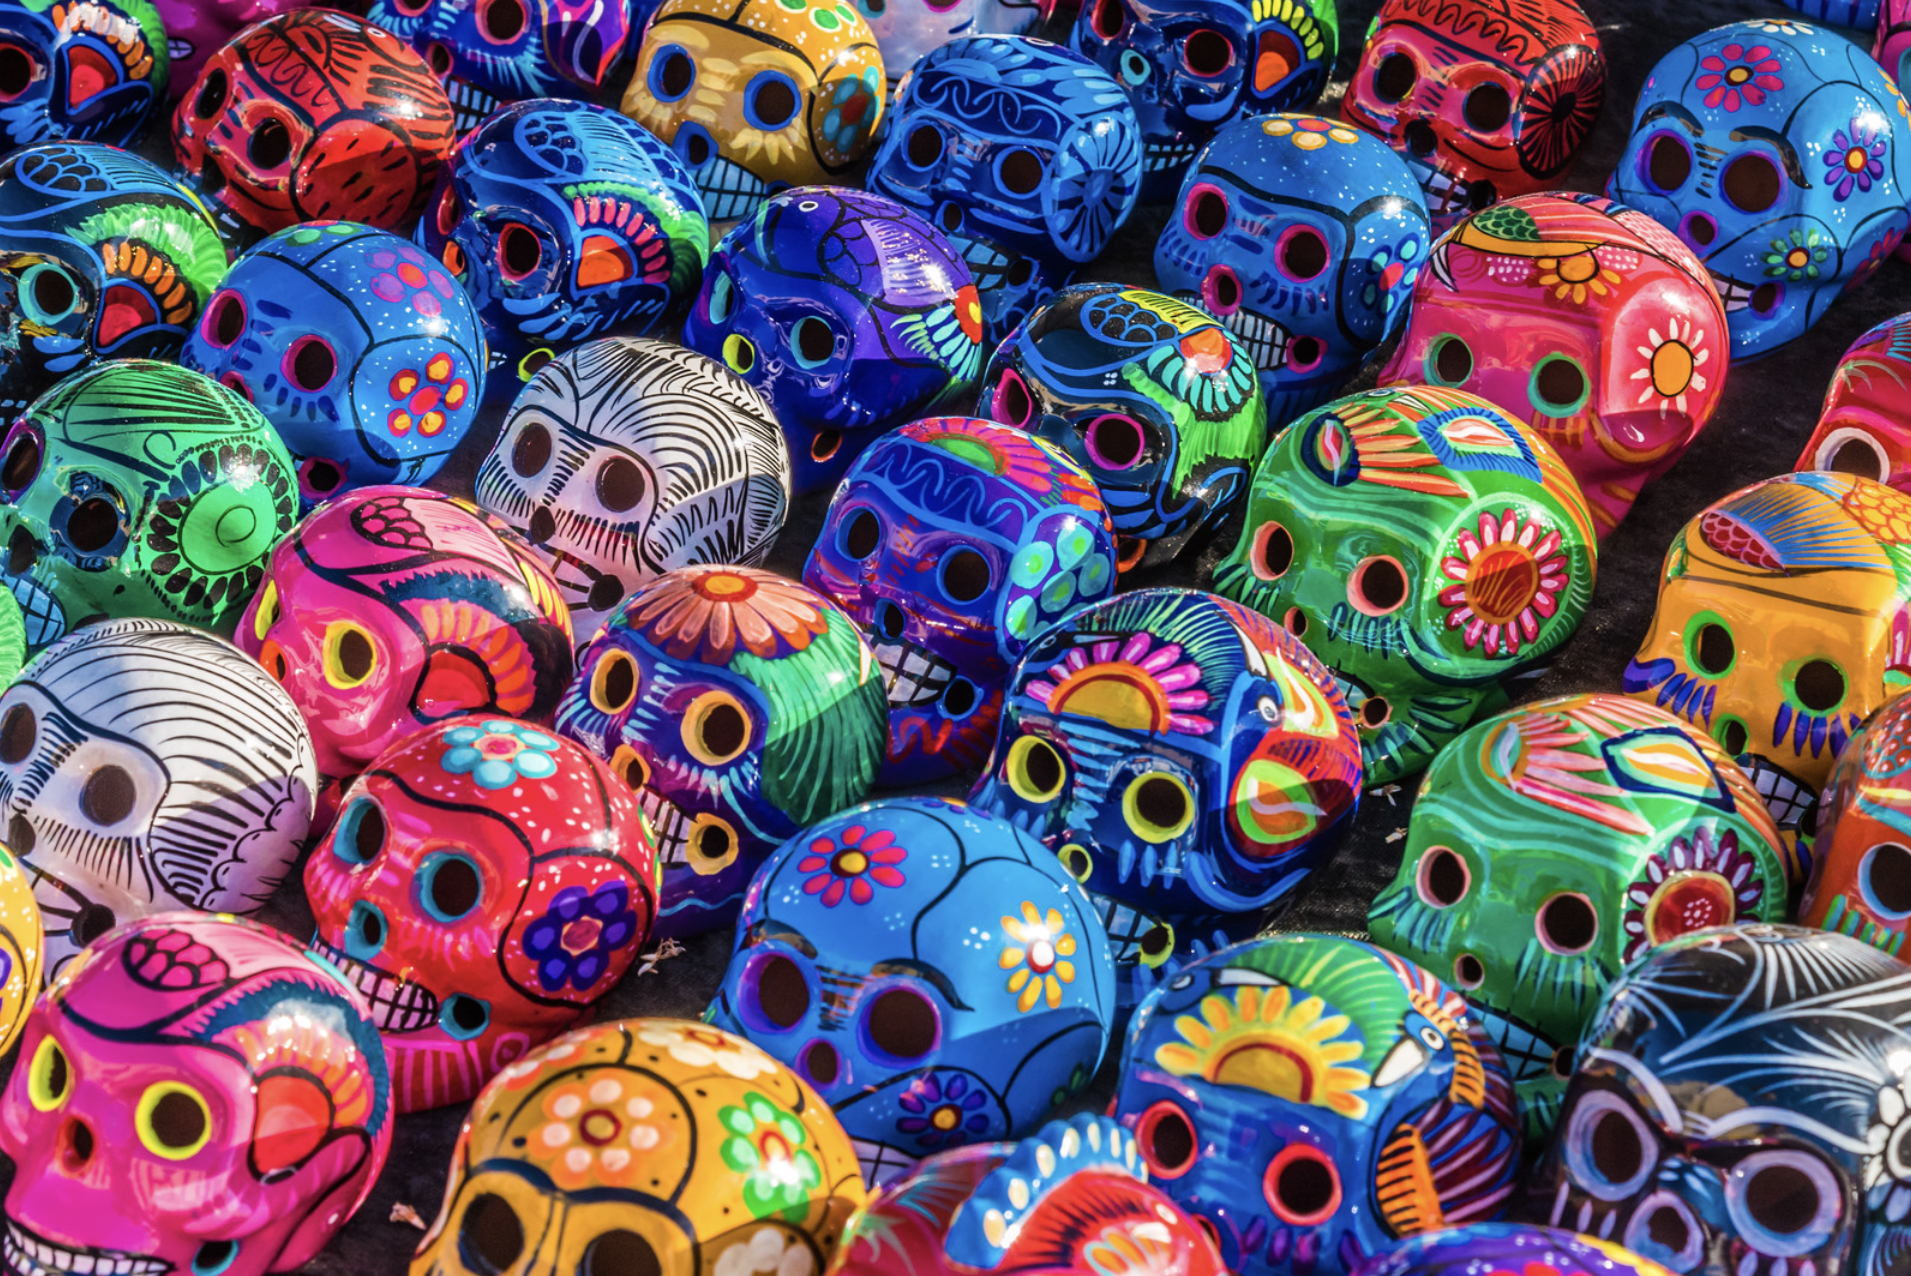 Colorful painted skulls at a festival